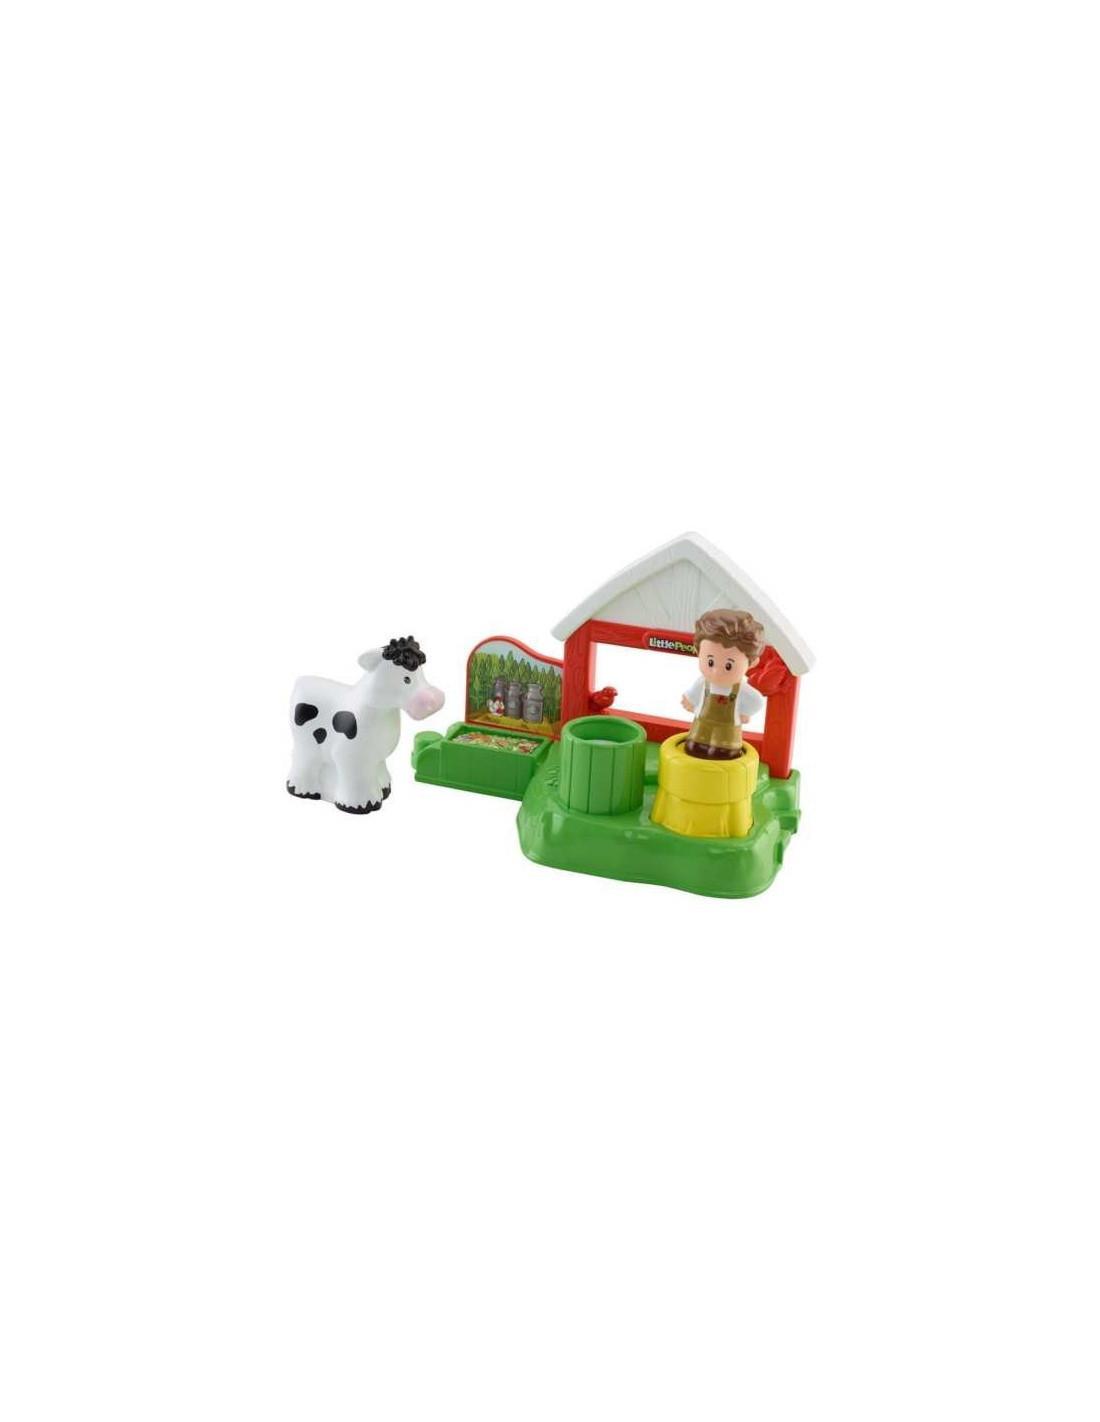 Bolti Farmhouse Kisállat Farm Tejüzem Fisher Price Little People